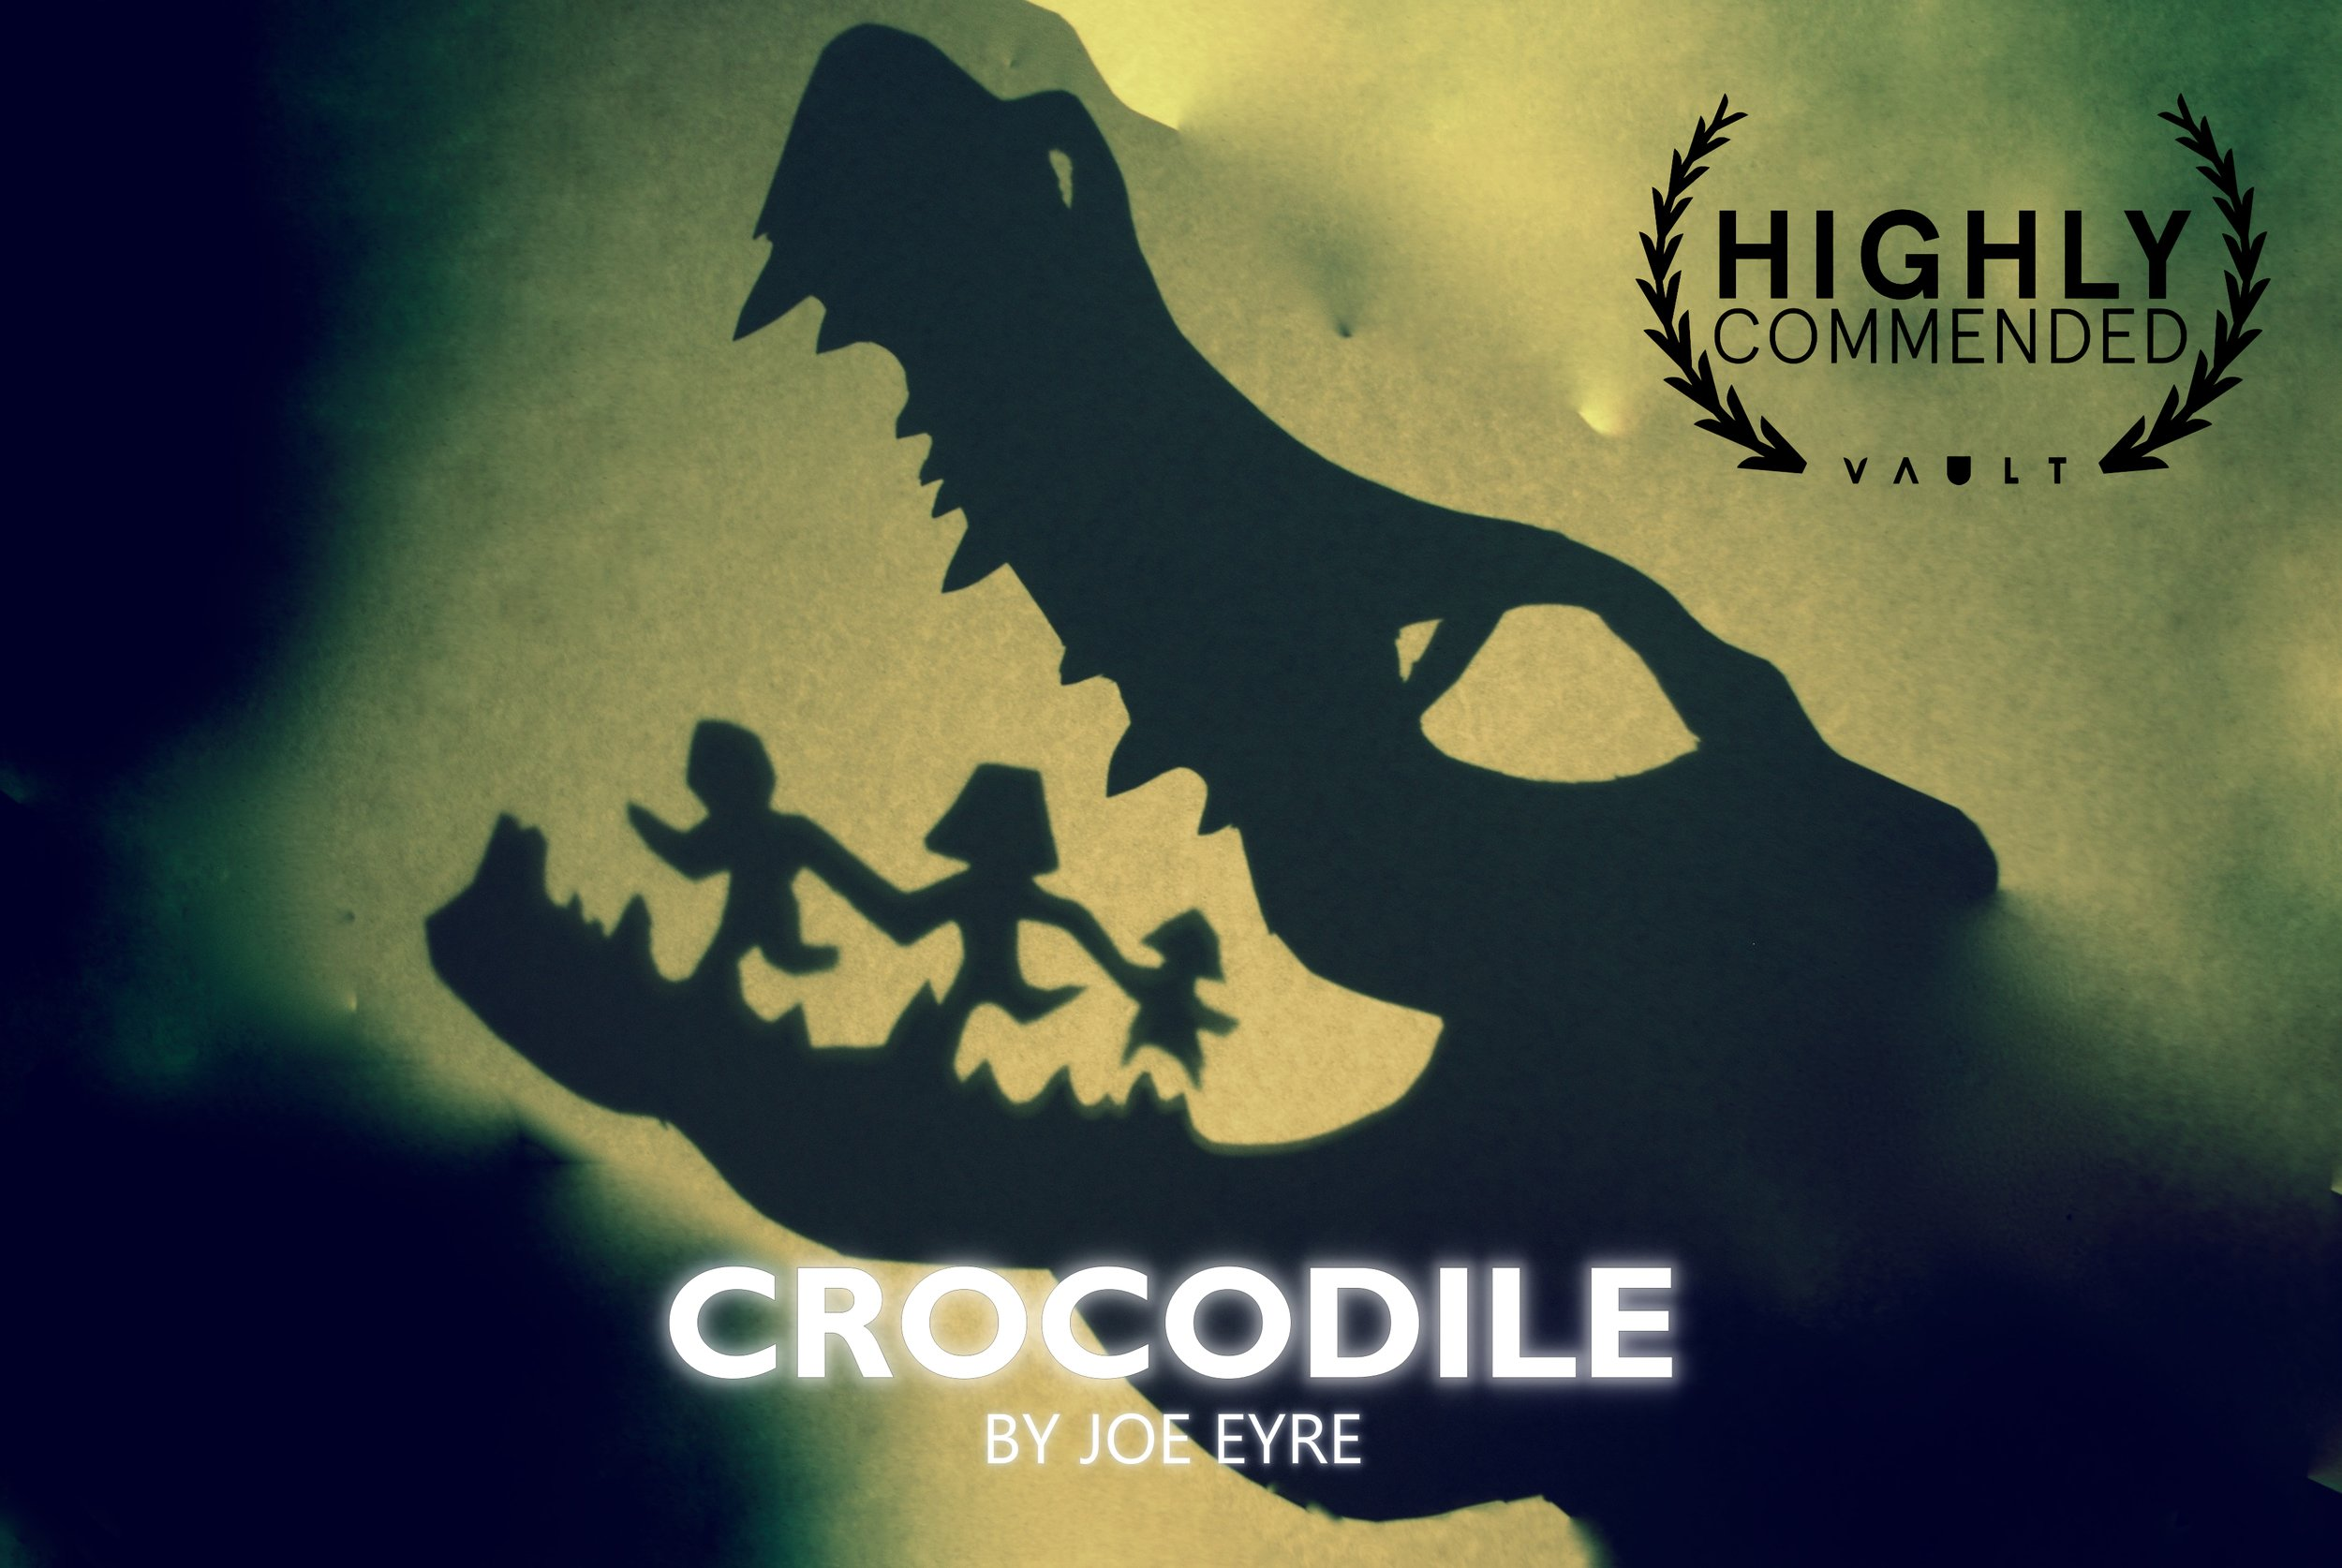 Crocodile Square Pic Highly Commended.jpg